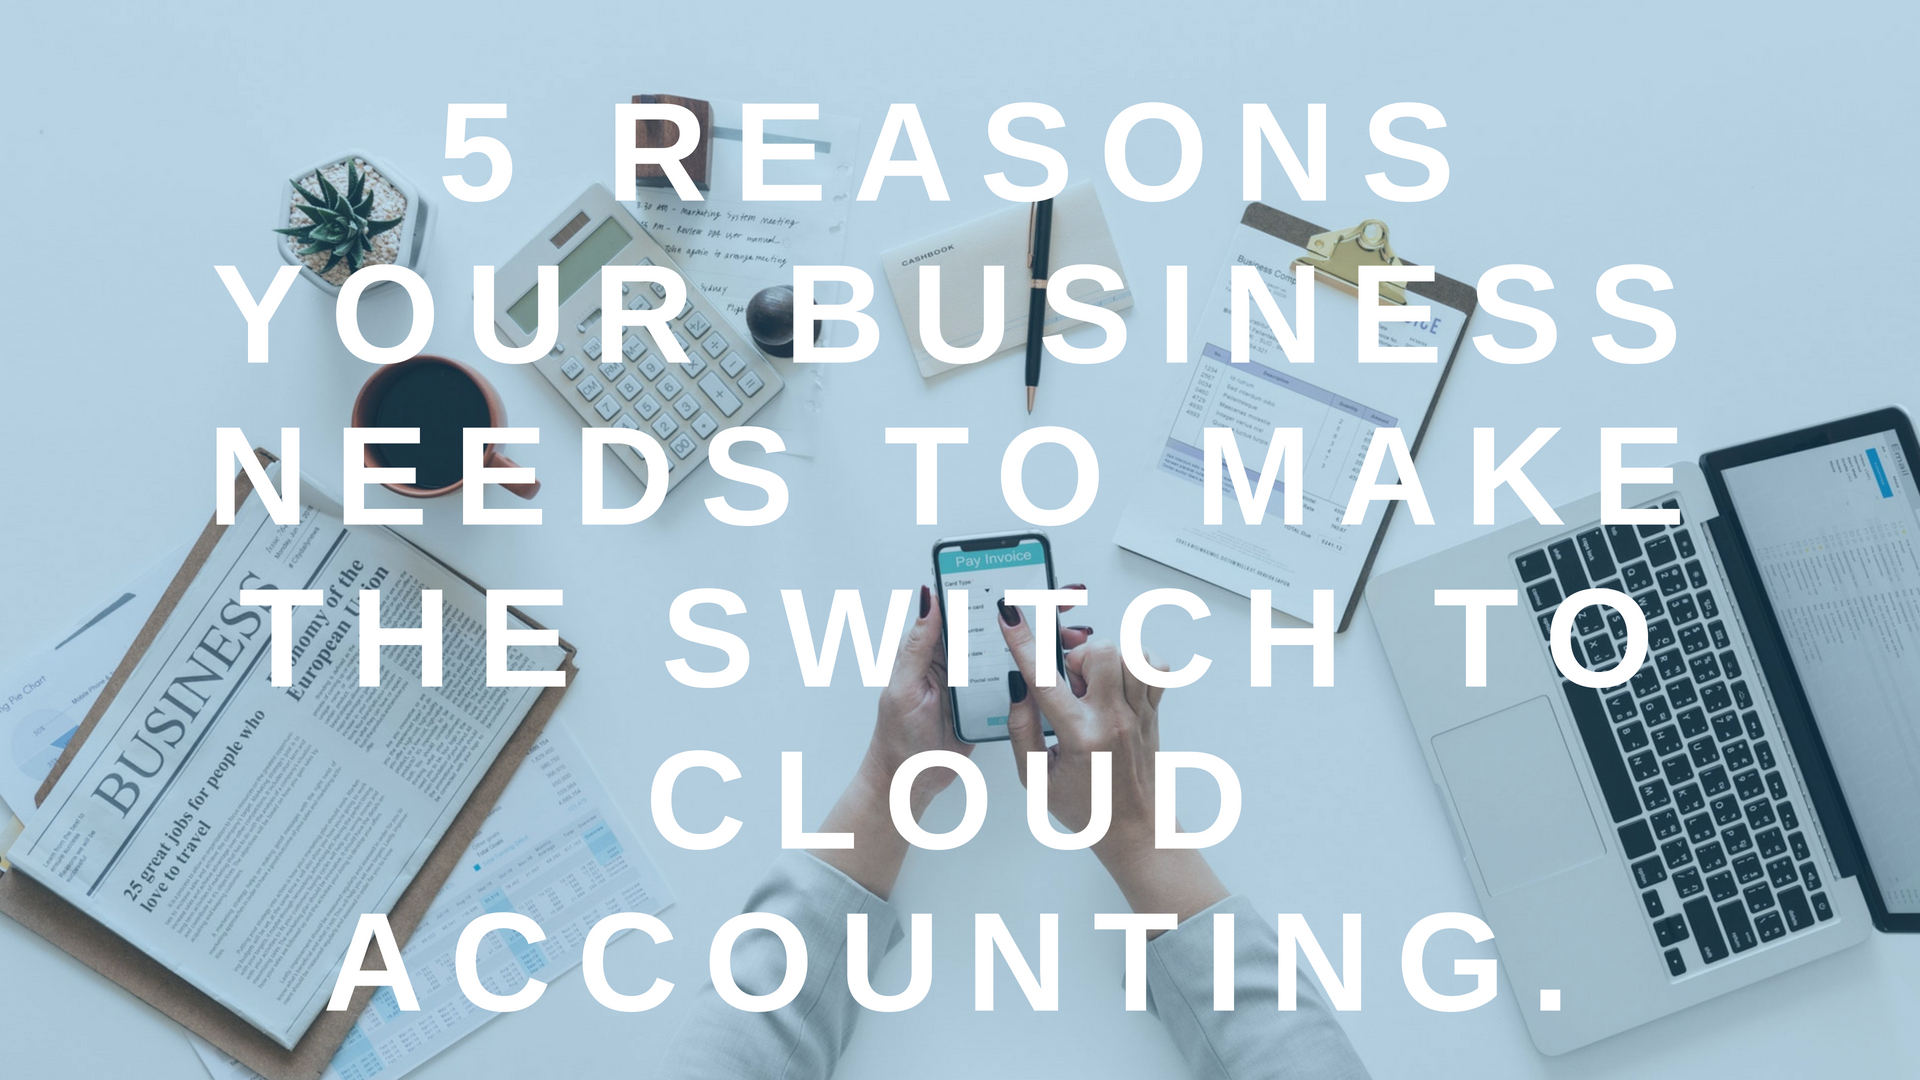 5 Reasons Your Business Needs to Make The Switch to Cloud Accounting.